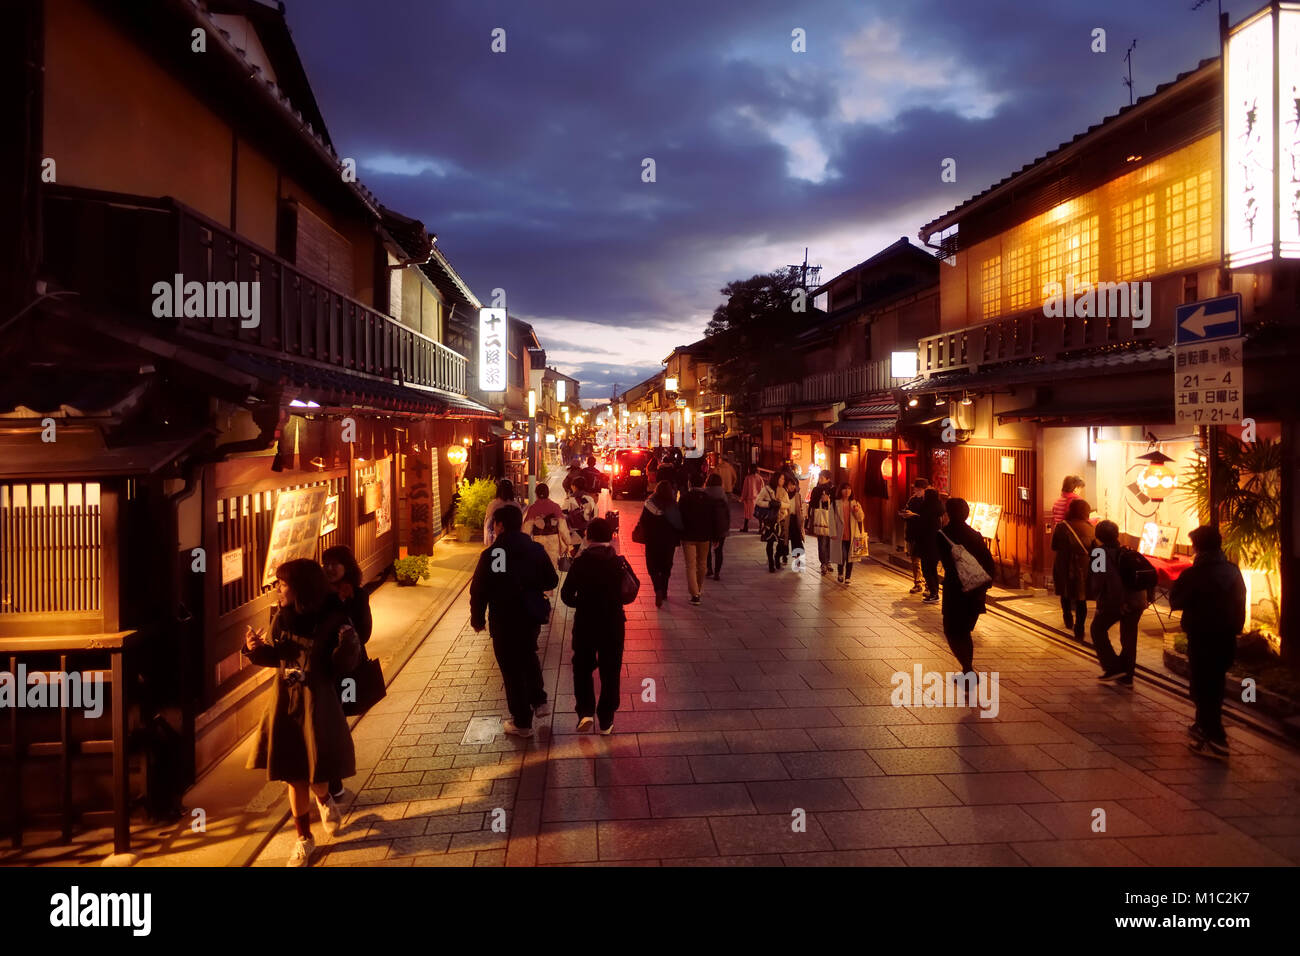 People at night on the busiest street in Gion district of Kyoto, Hanamikoji Dori, twilight old city scenery with Stock Photo